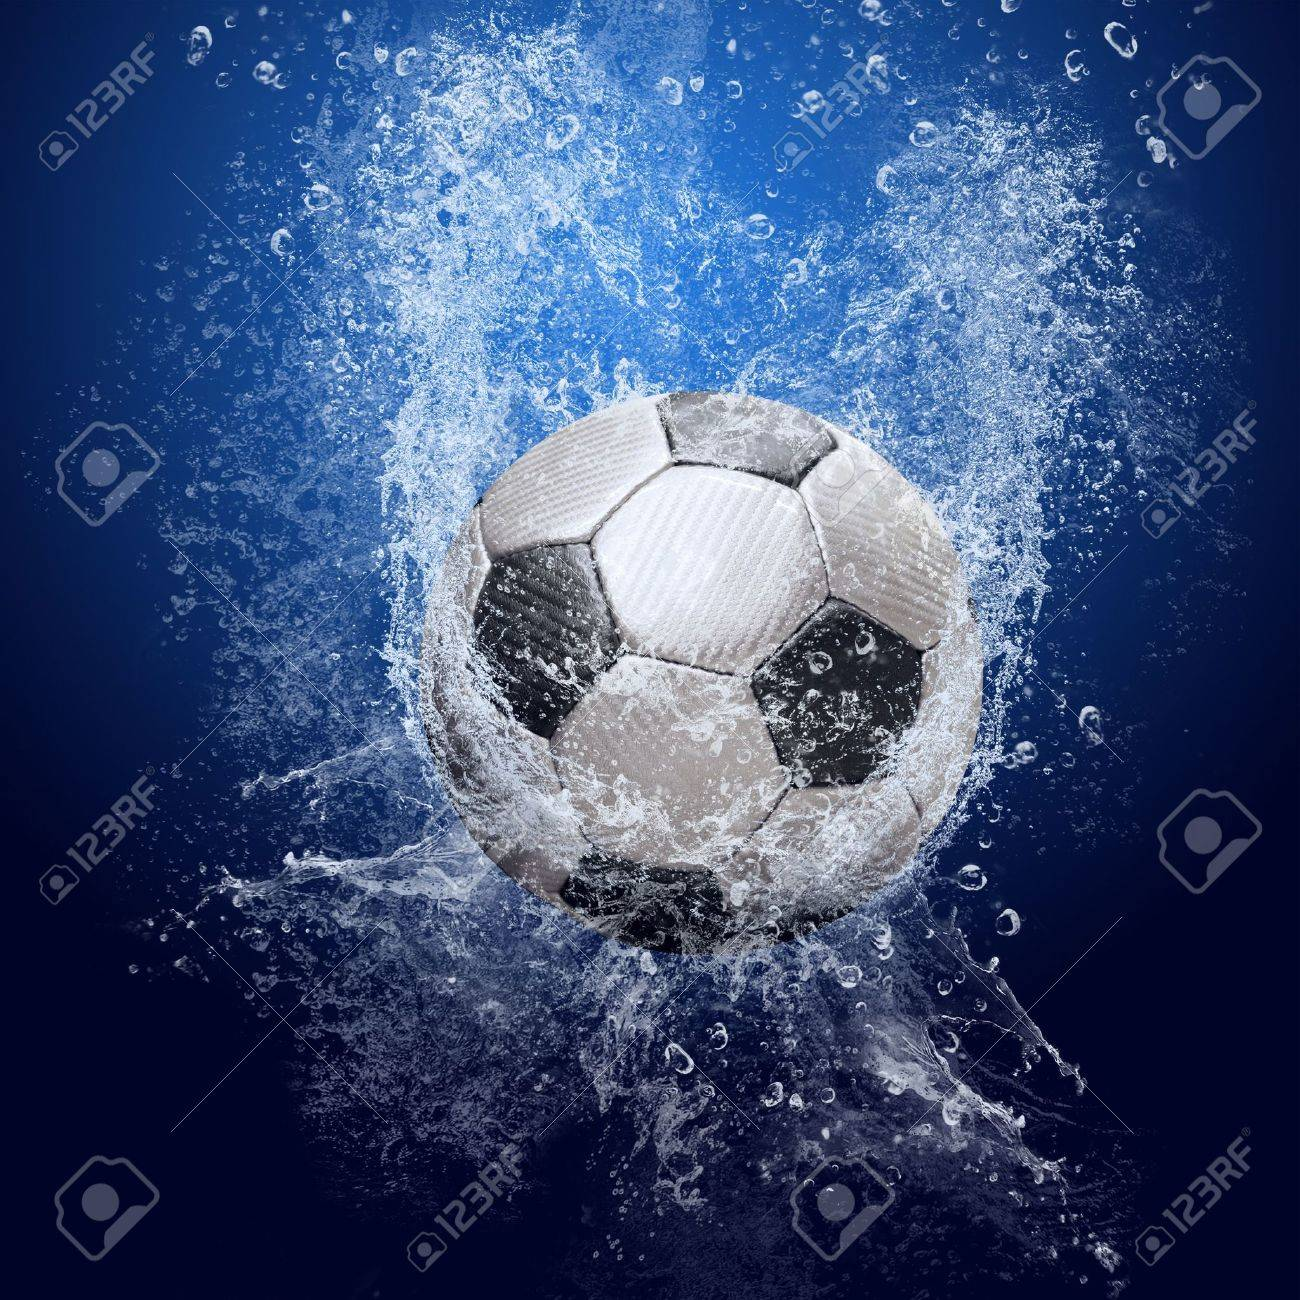 Water drops around soccer ball on blue background Stock Photo - 8174618